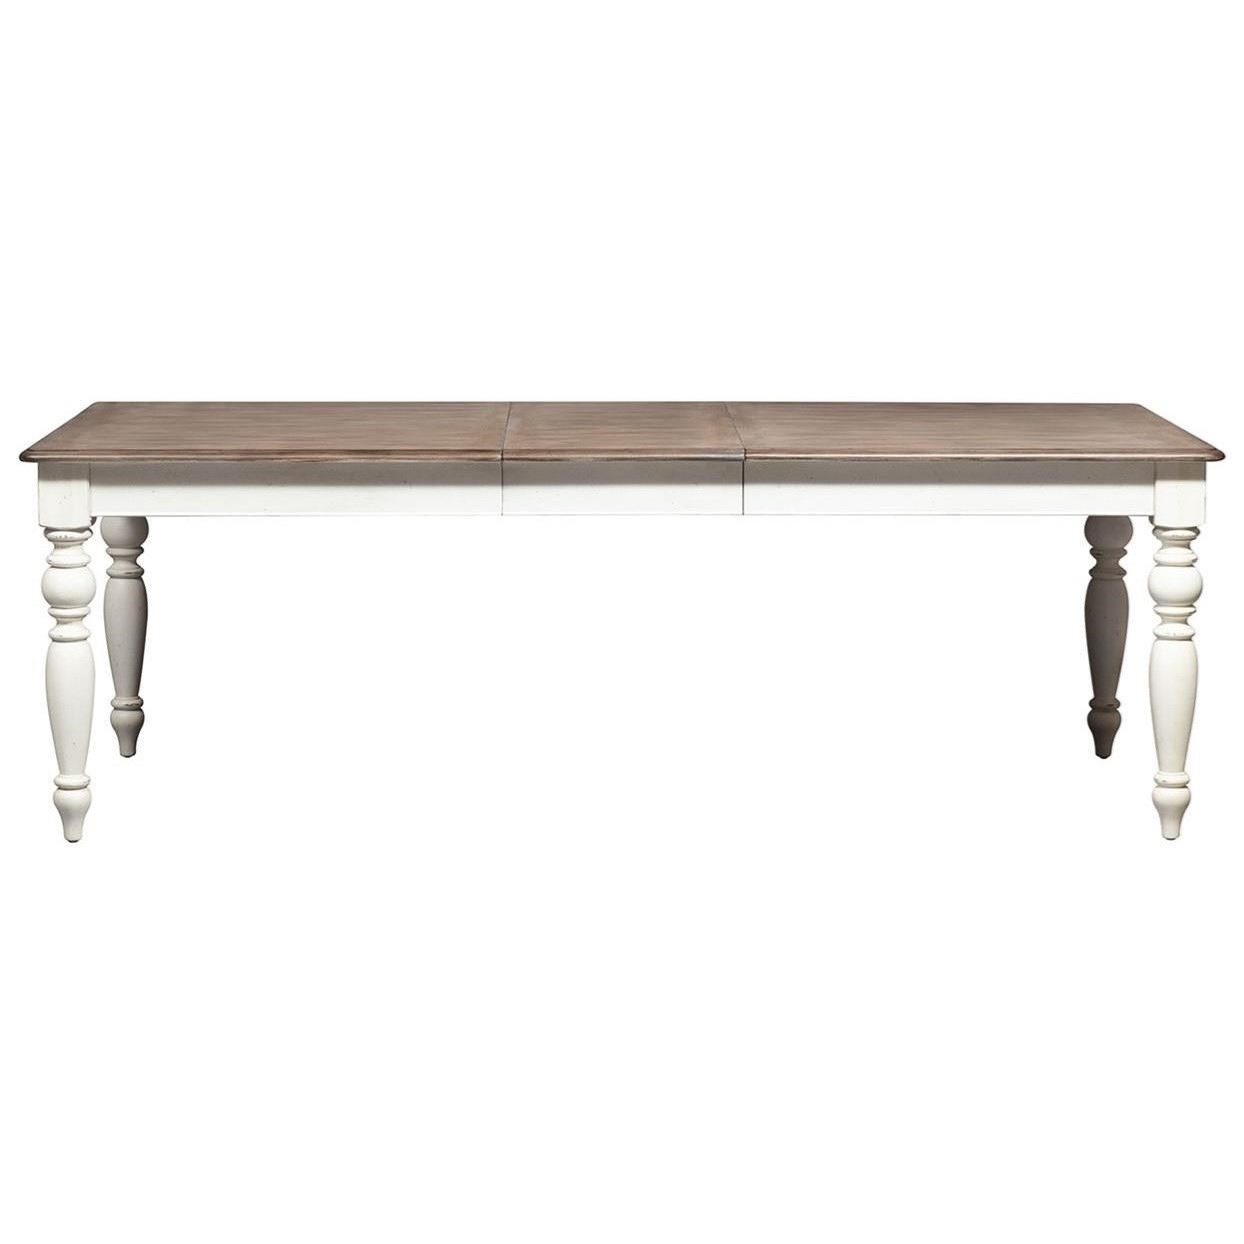 Abbey Road Rectangular Leg Table by Liberty Furniture at Suburban Furniture